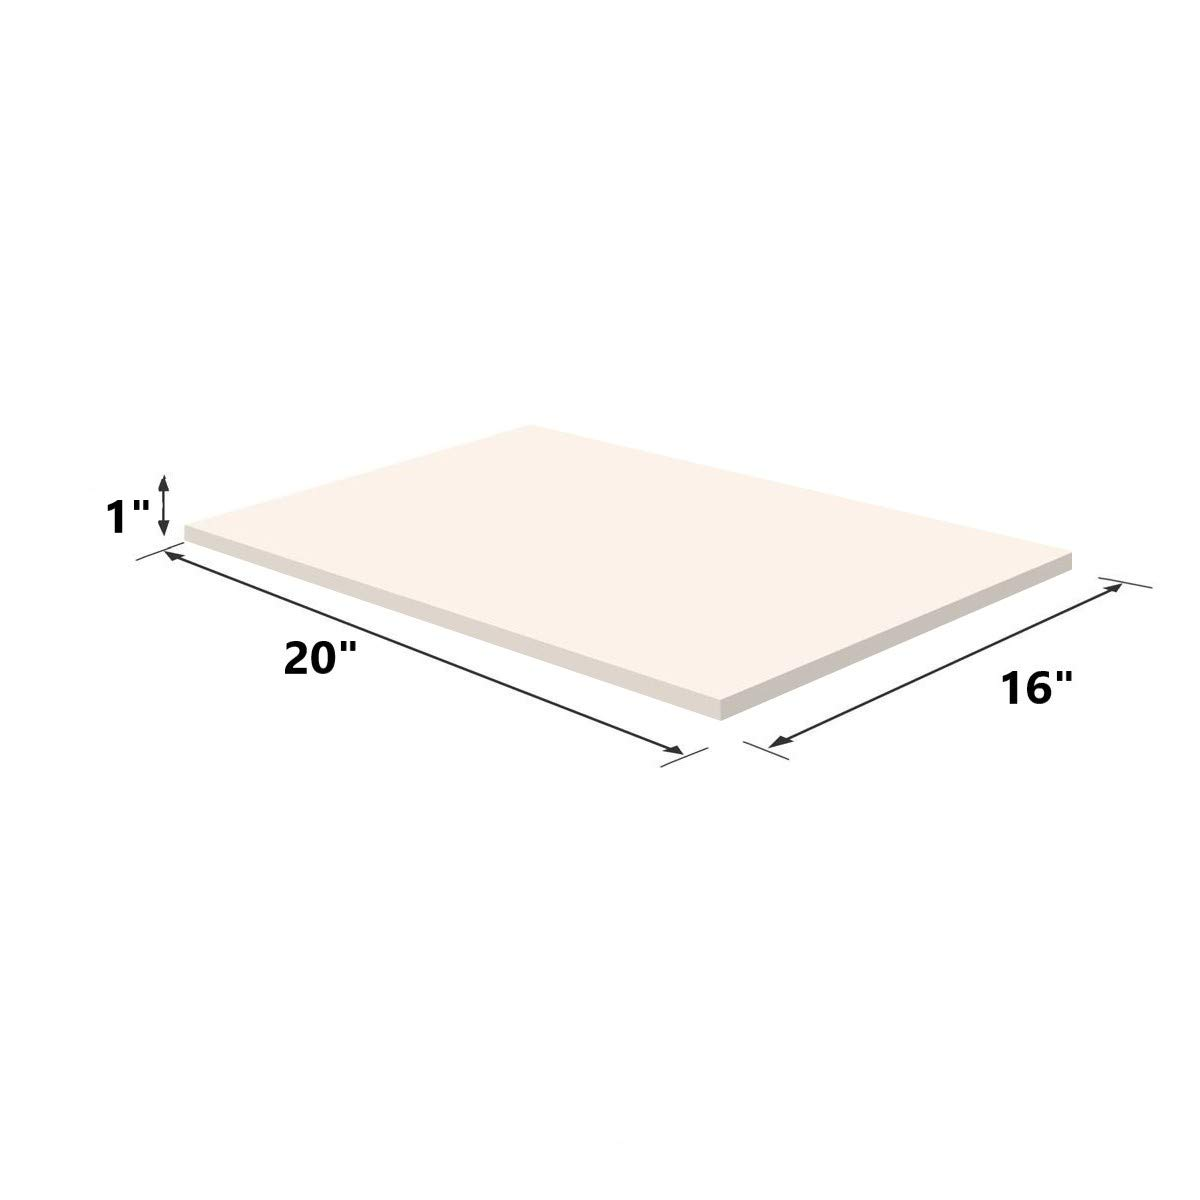 Upholstery Visco Memory Foam Sheet- 3.5 lb High Density 1''x20''x16''- Luxury Quality for Sofa, Chair Cushions, Pillows, Doctor Recommended for Backache & Bed Sores by Dream Solutions USA by Dream Solutions USA